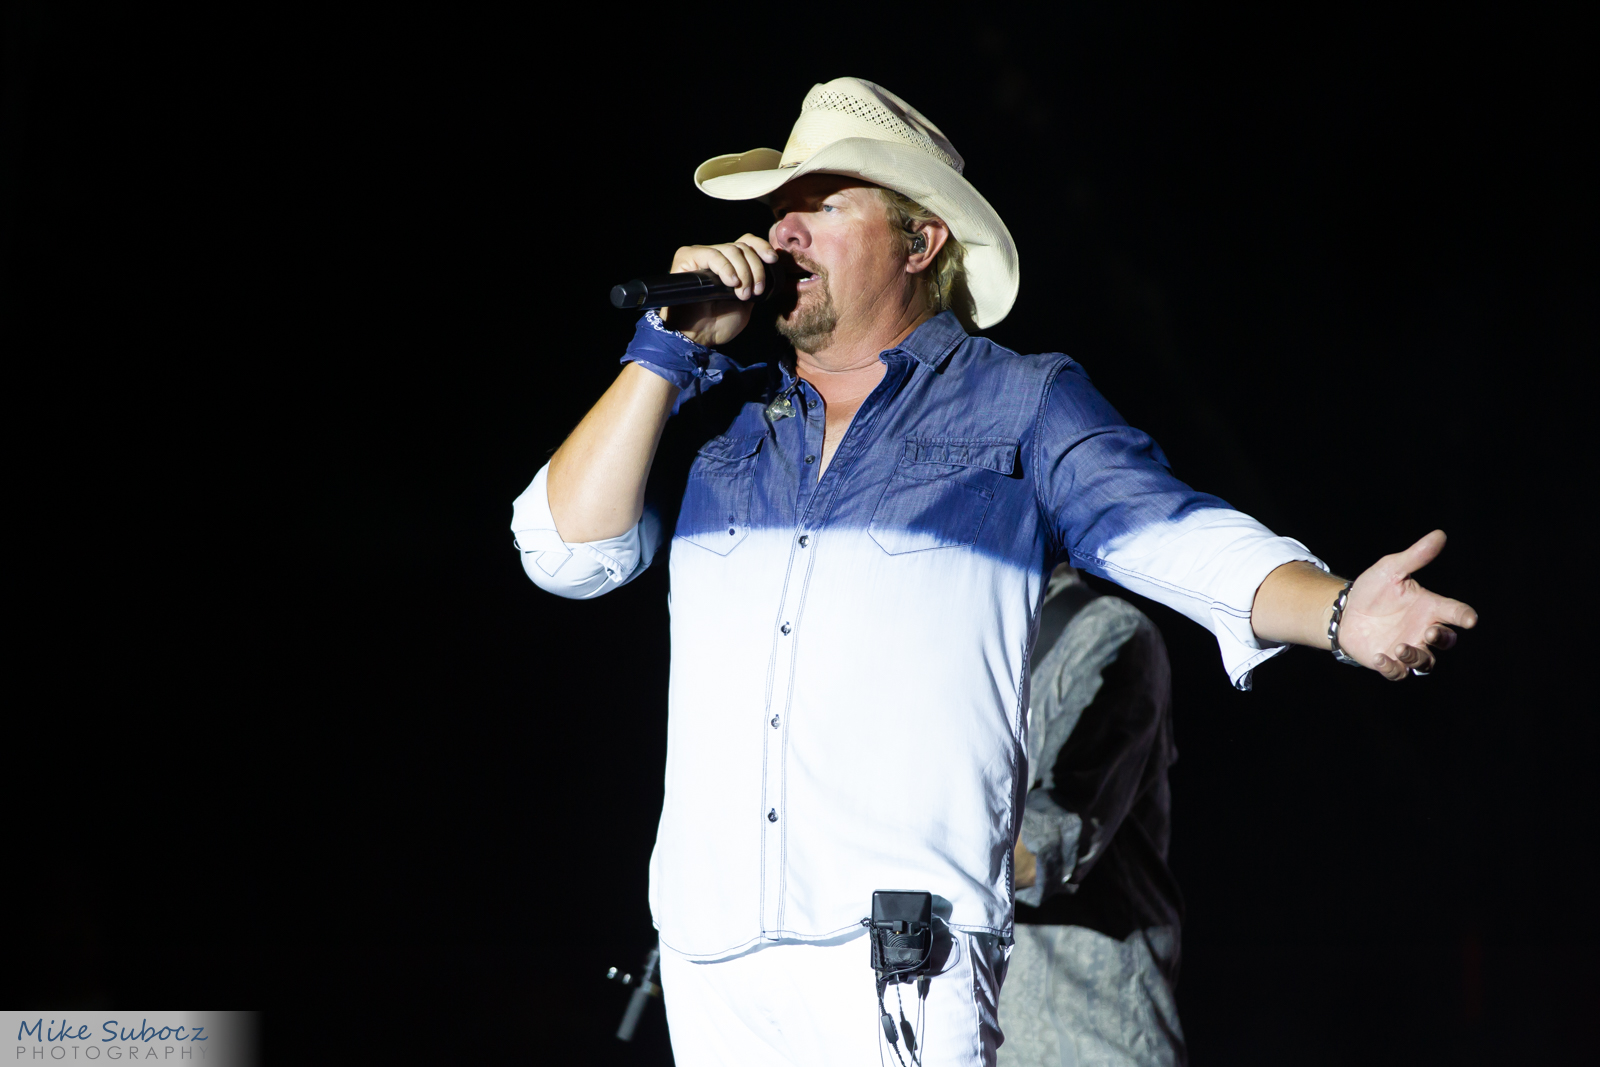 Toby Keith concert image